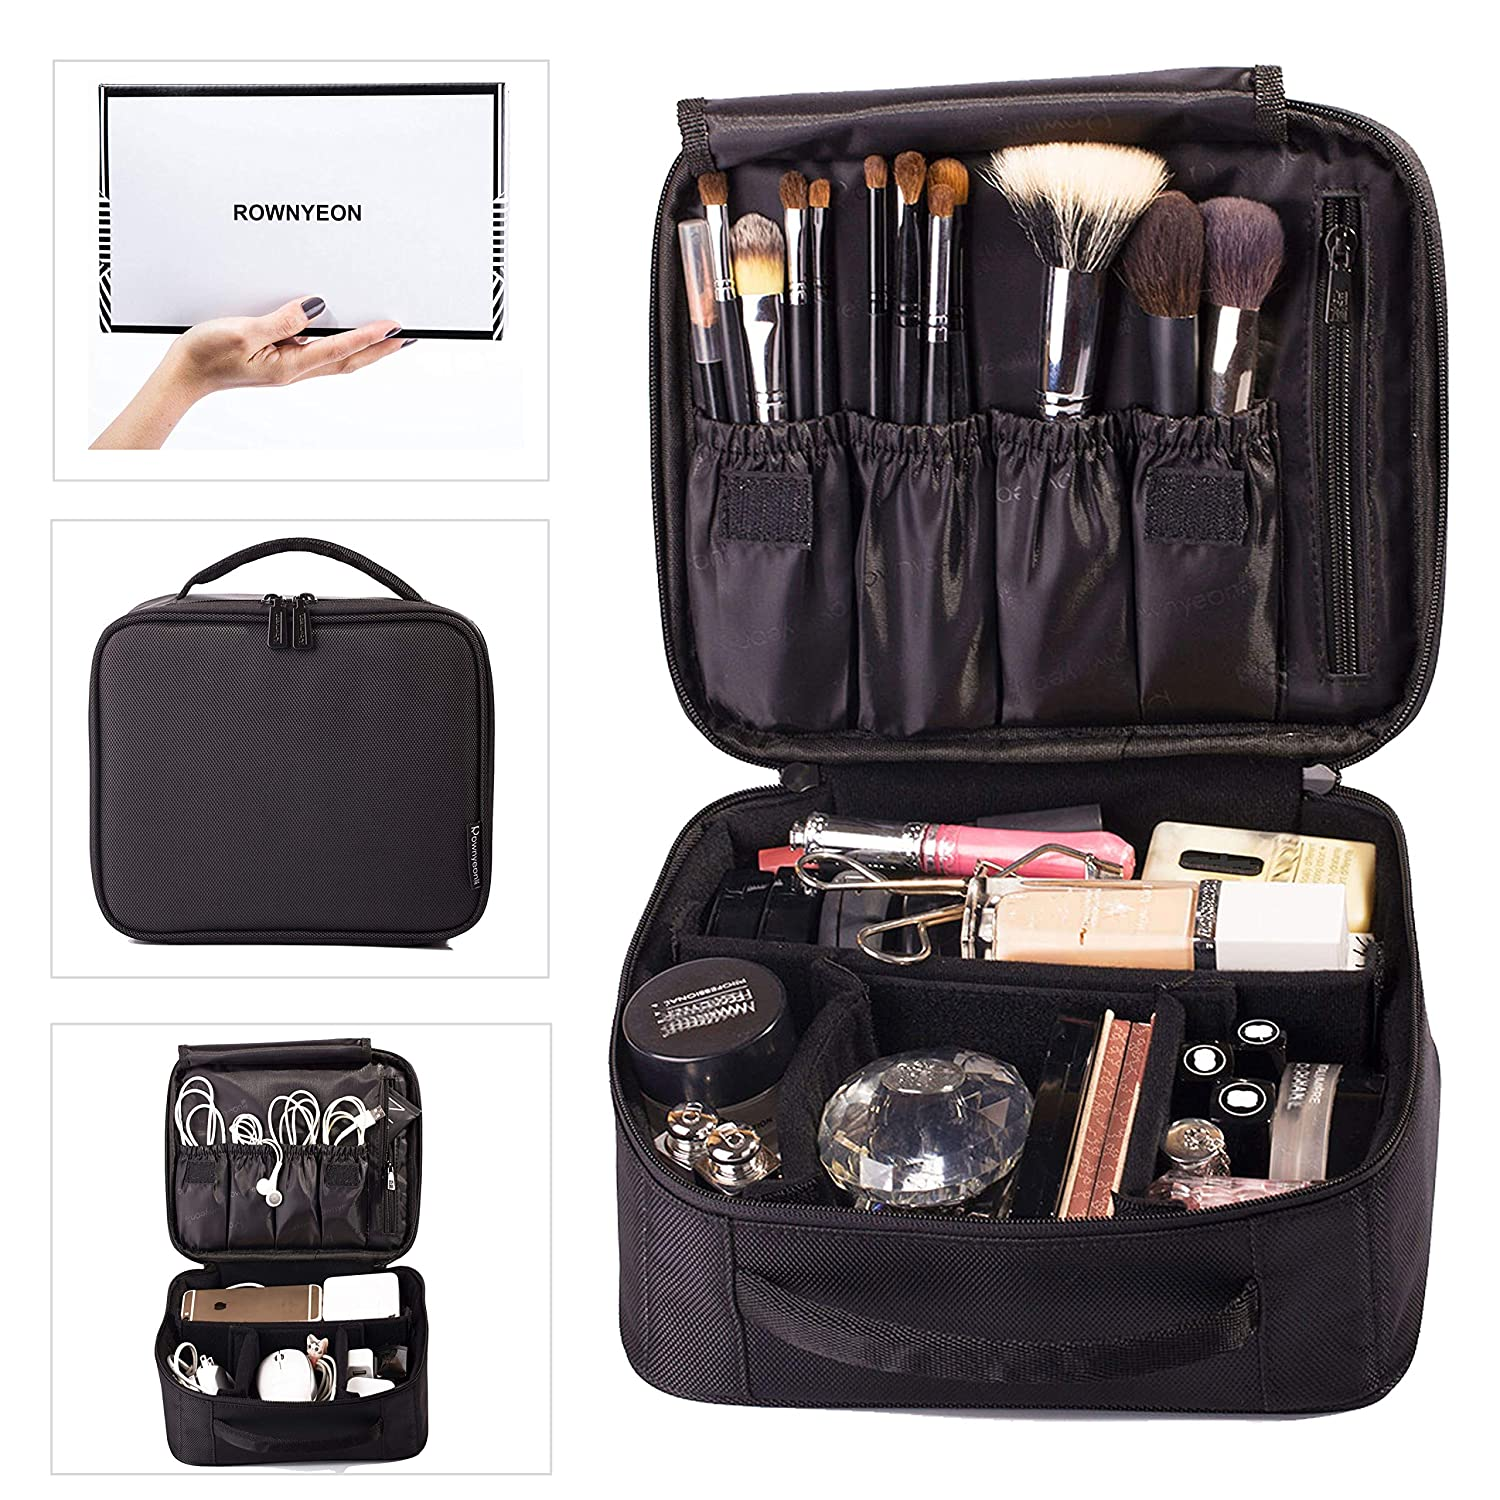 ROWNYEON Makeup Train Case Makeup Bag Organizer Travel Makeup Case Cosmetic Bag Proffessional Portable Storage Bag for Cosmetics Makeup Brushes Gift for Girls Women 9.8 Mini Black